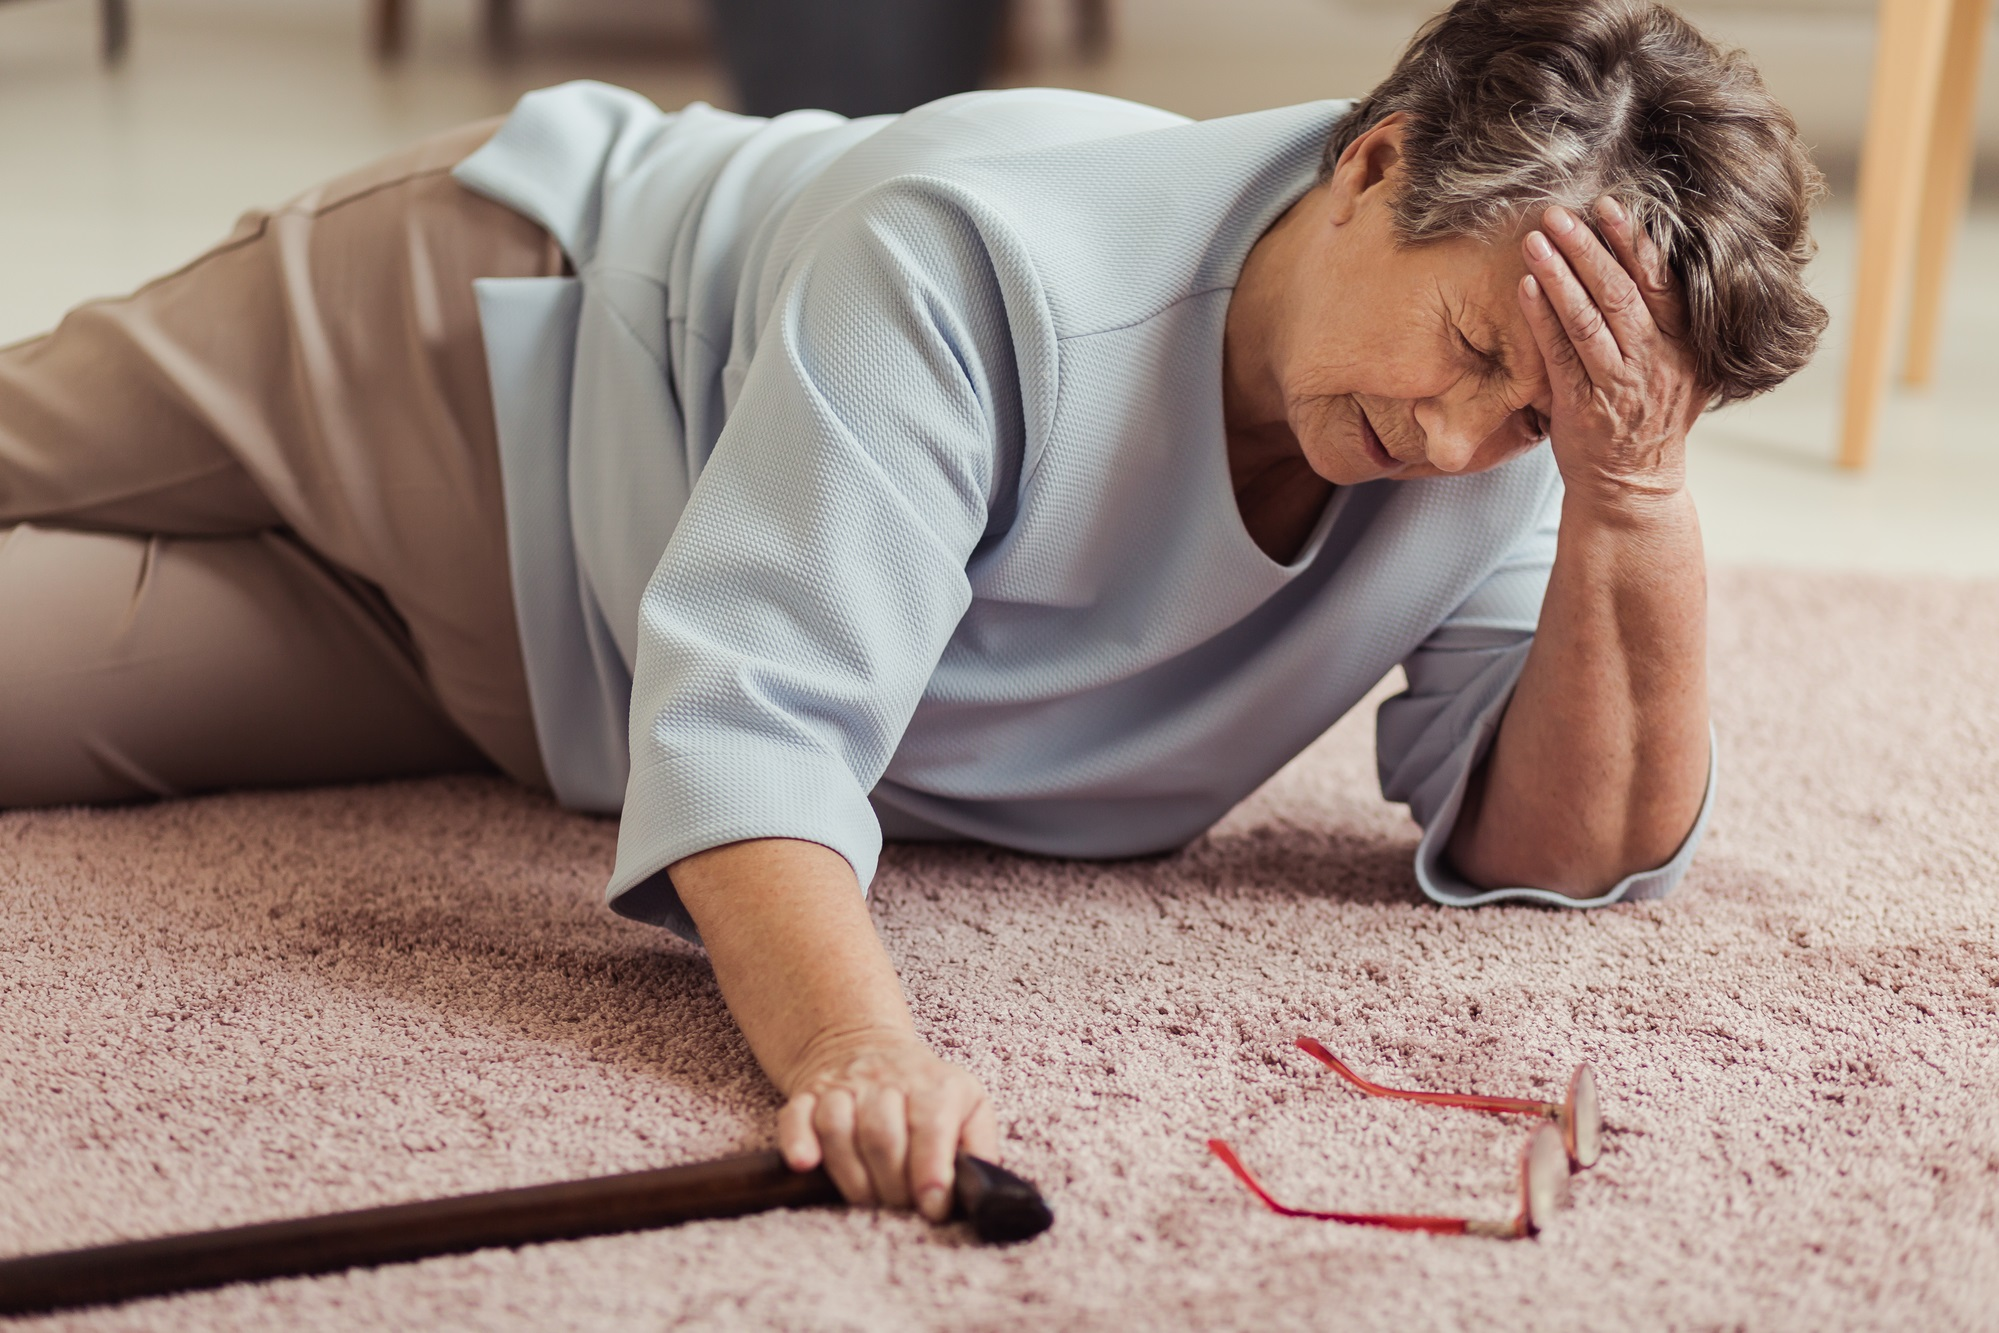 Fall Prevention Techniques for Stroke Survivors